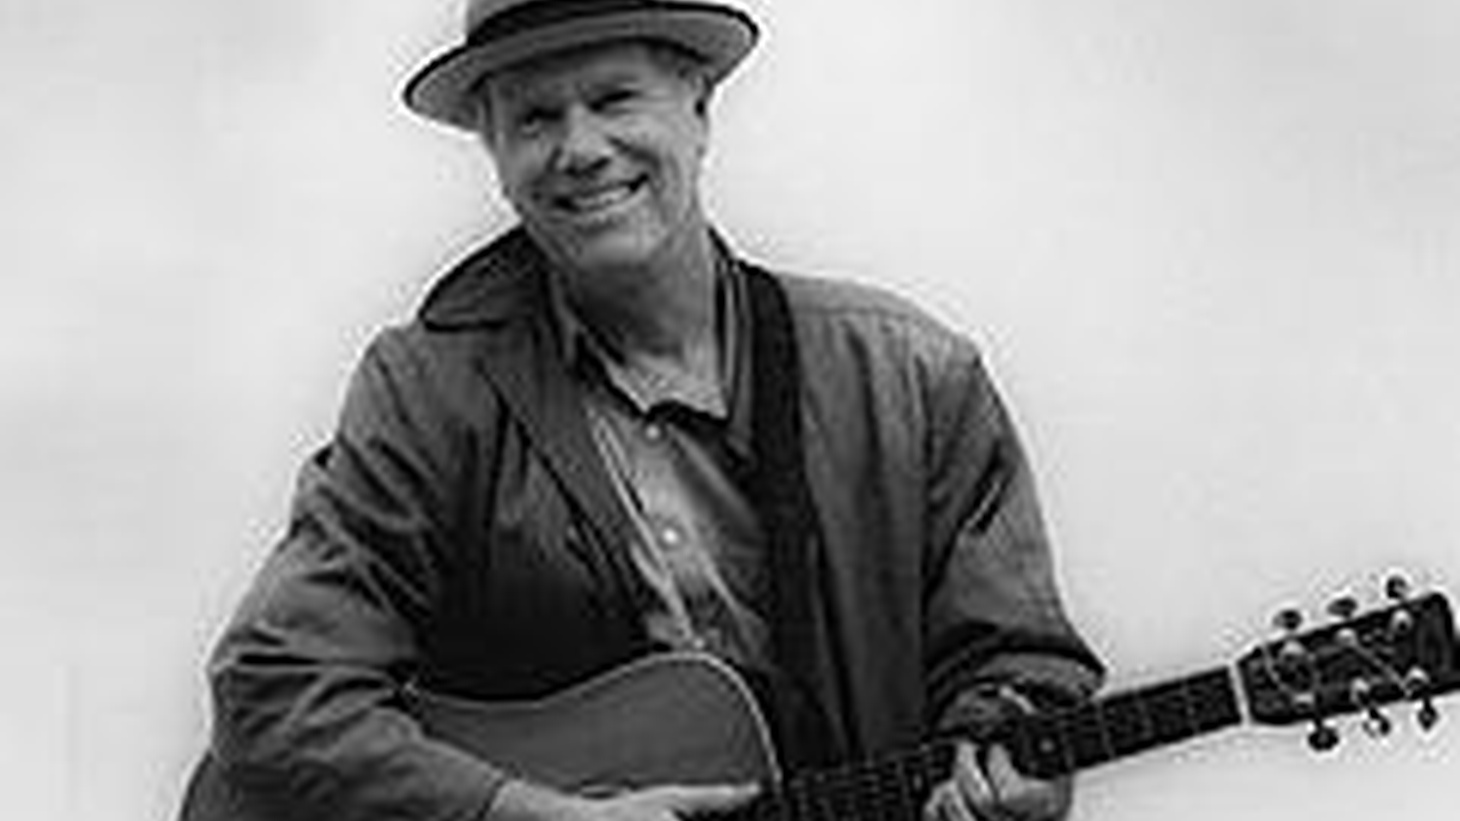 Loudon Wainwright has released a steady stream of recordings since 1970. His confessional work is often wry and humorous but no doubt self-examining...